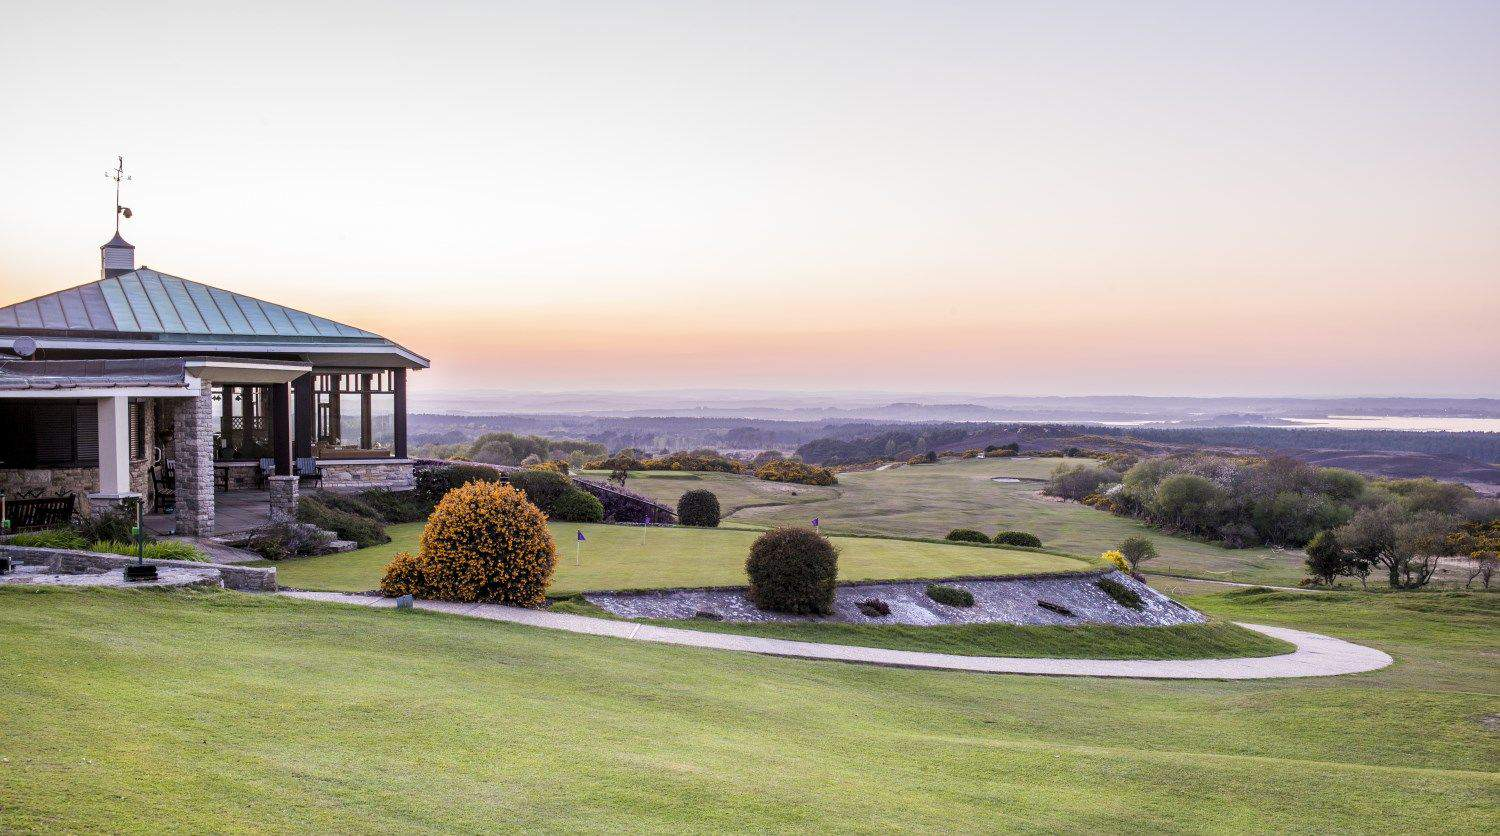 Consistently ranked among the top 100 courses in the British Isles by Golf World, the nearby Isle of Purbeck Golf Club is set within a nature reserve where many rare plants and birds can be seen as you play a round.